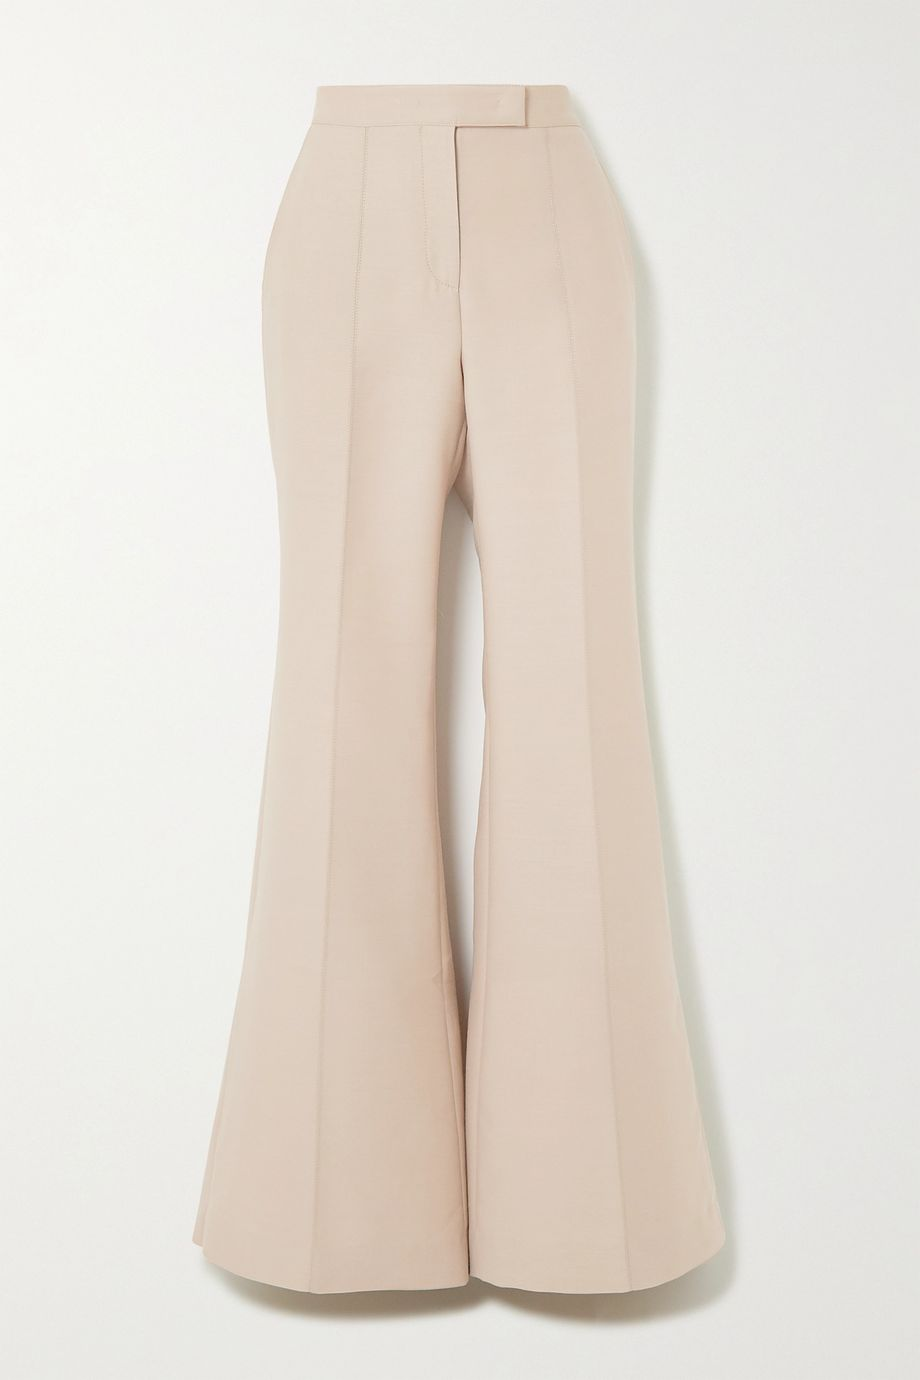 Gabriela Hearst Leda wool and silk-blend wide-leg pants